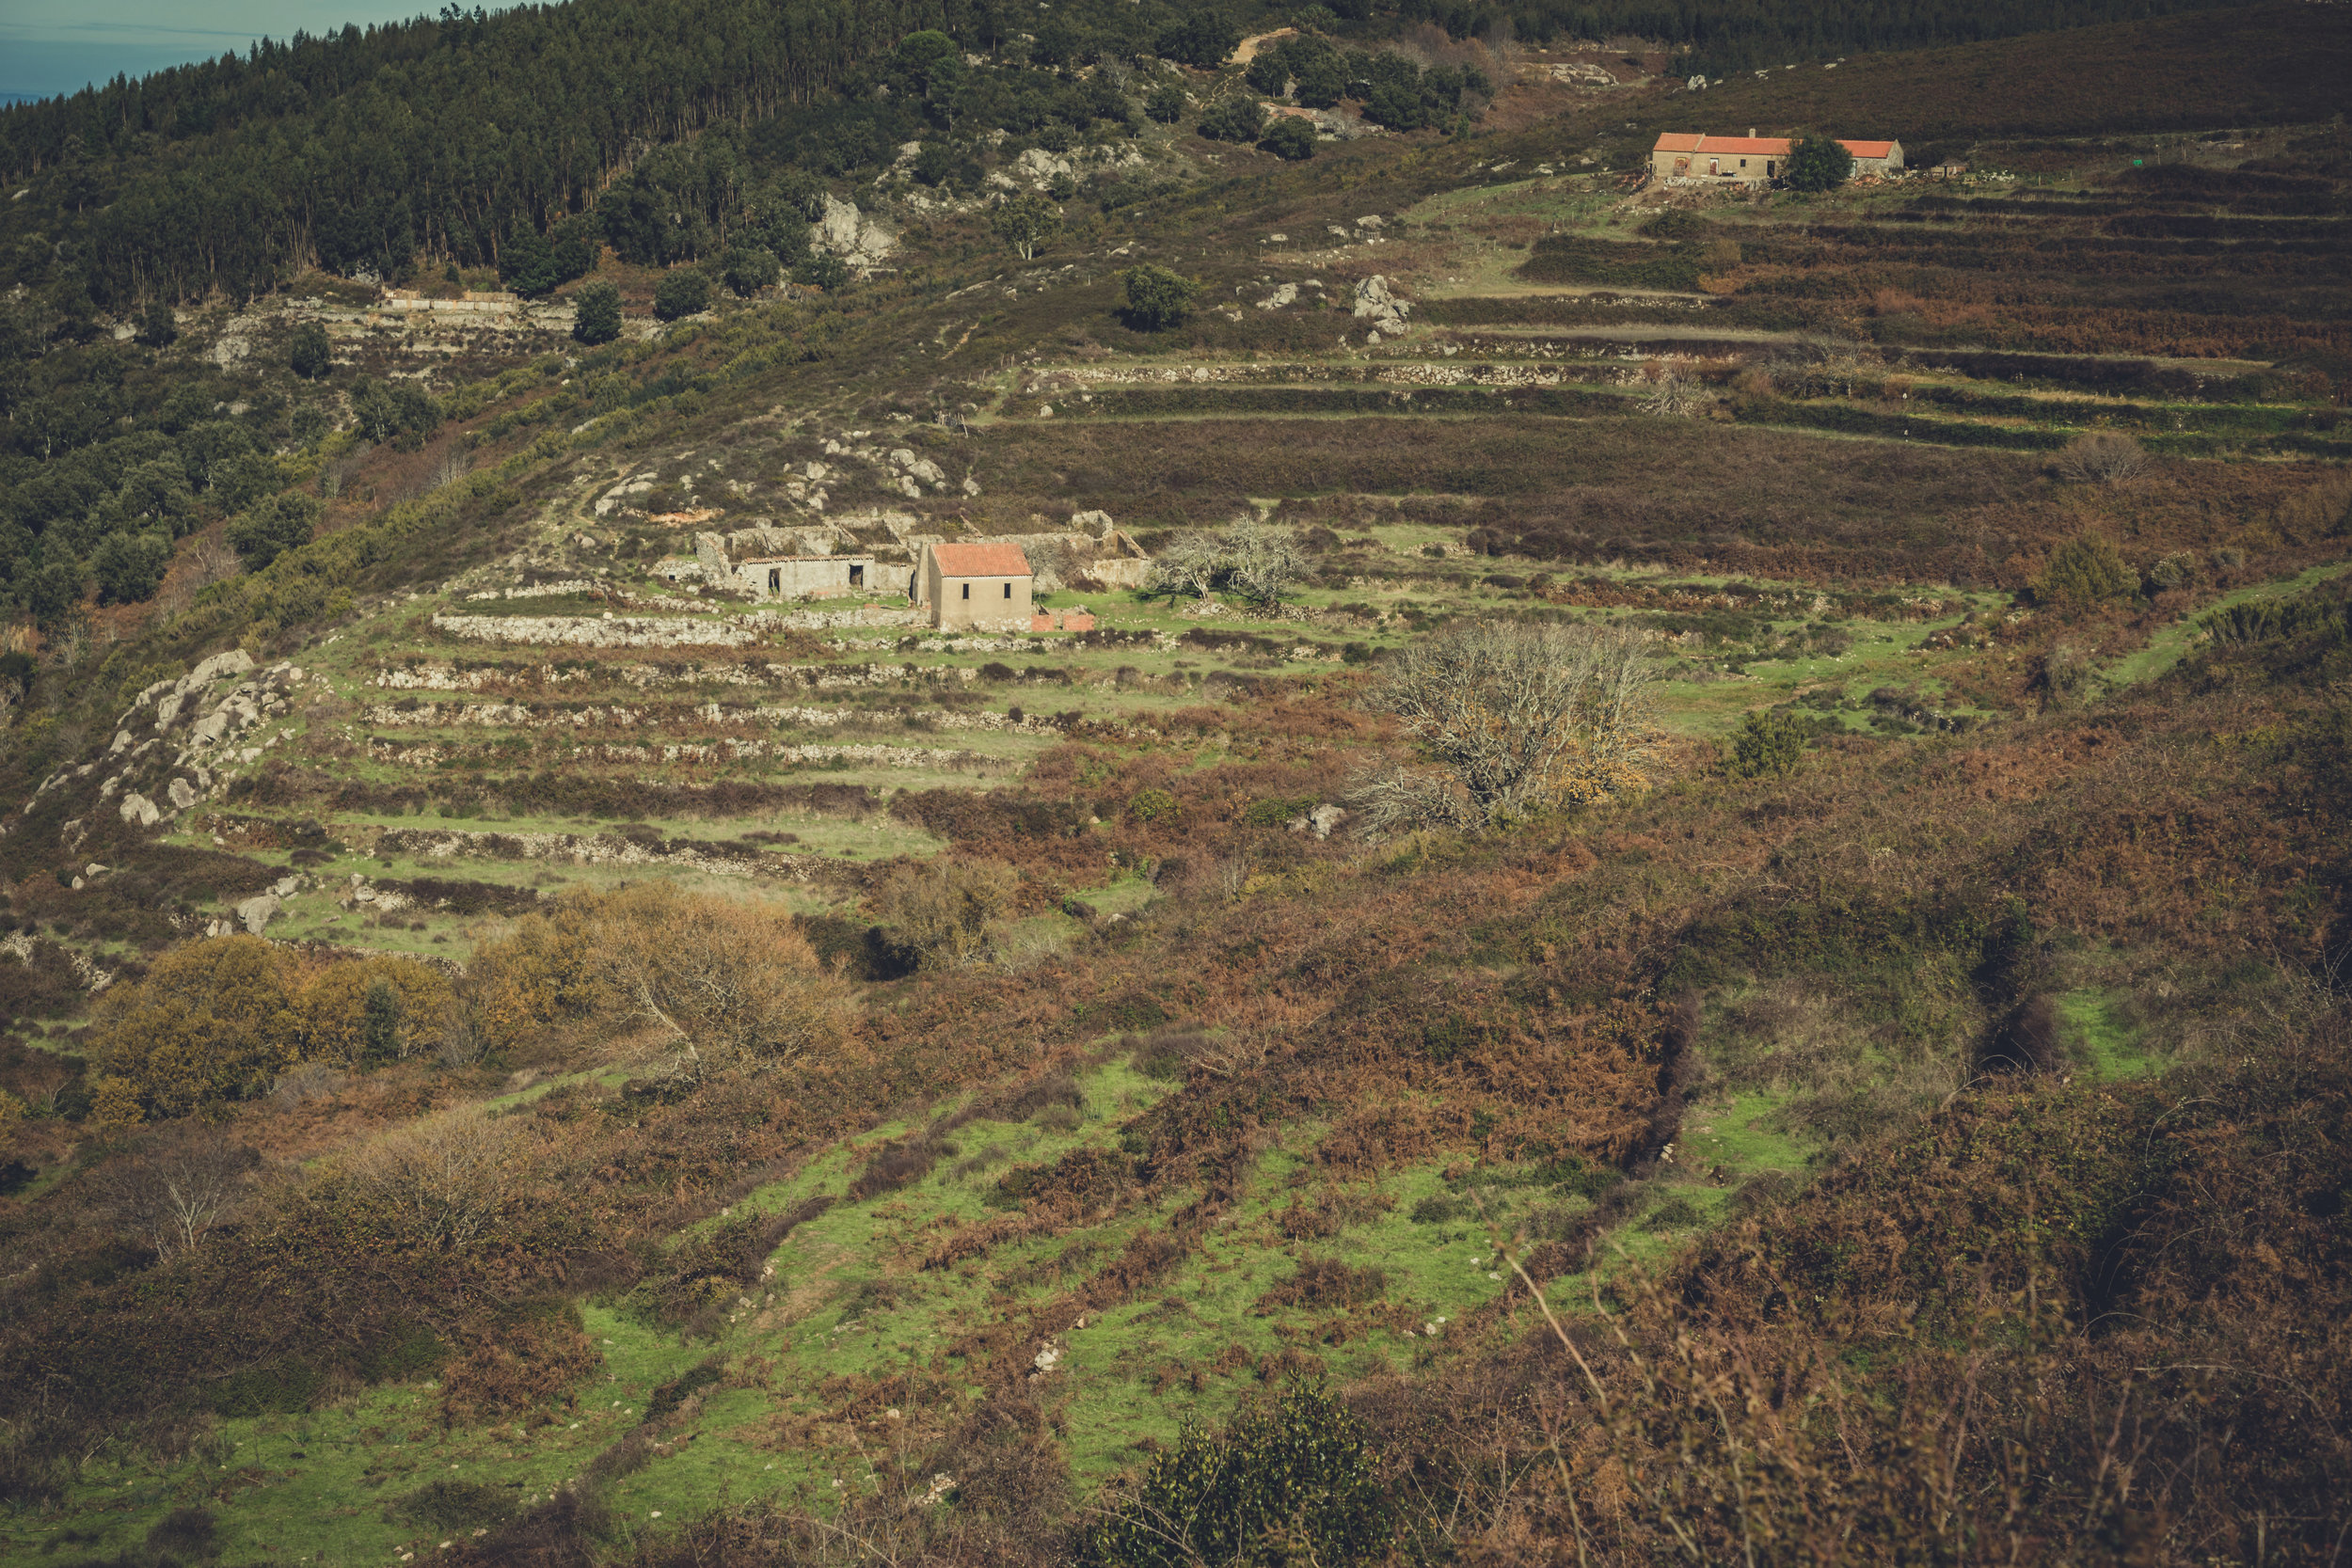 barbelote waterfall monchique portugal. hiking trail. walking trail. evil trees. lots of trees. cork trees. looking down the valley.jpg